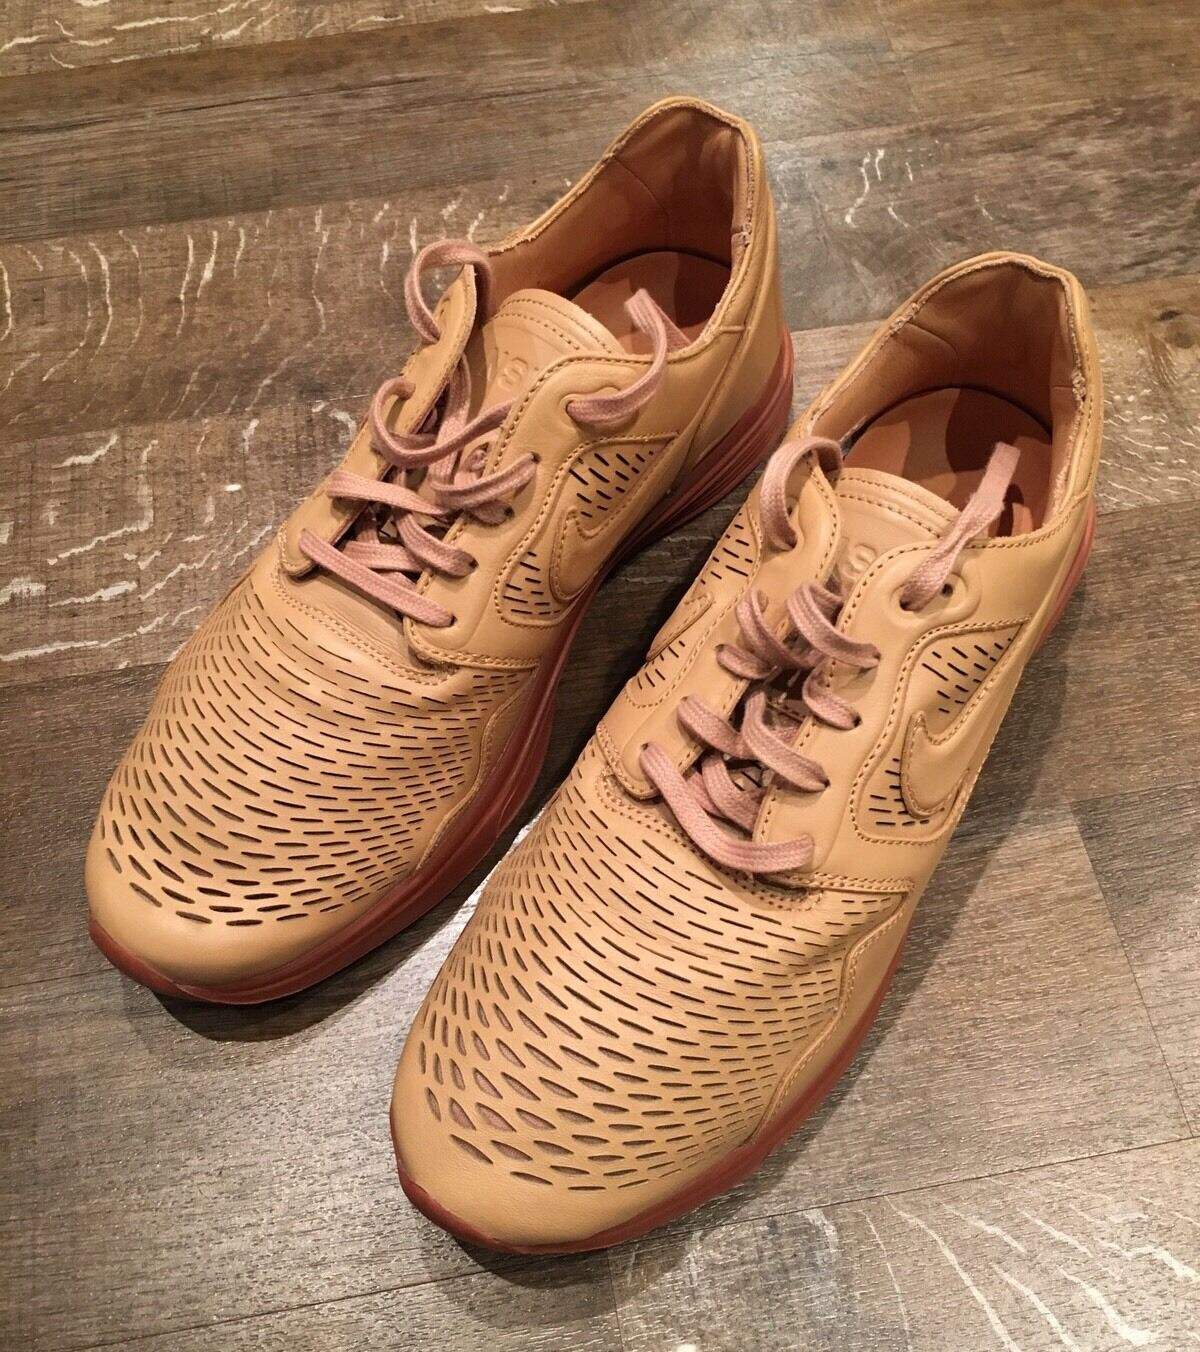 Nike Nike Nike Lunar Flow PRM NSW Natural UK10 HTM Flyknit 525284-100 573695